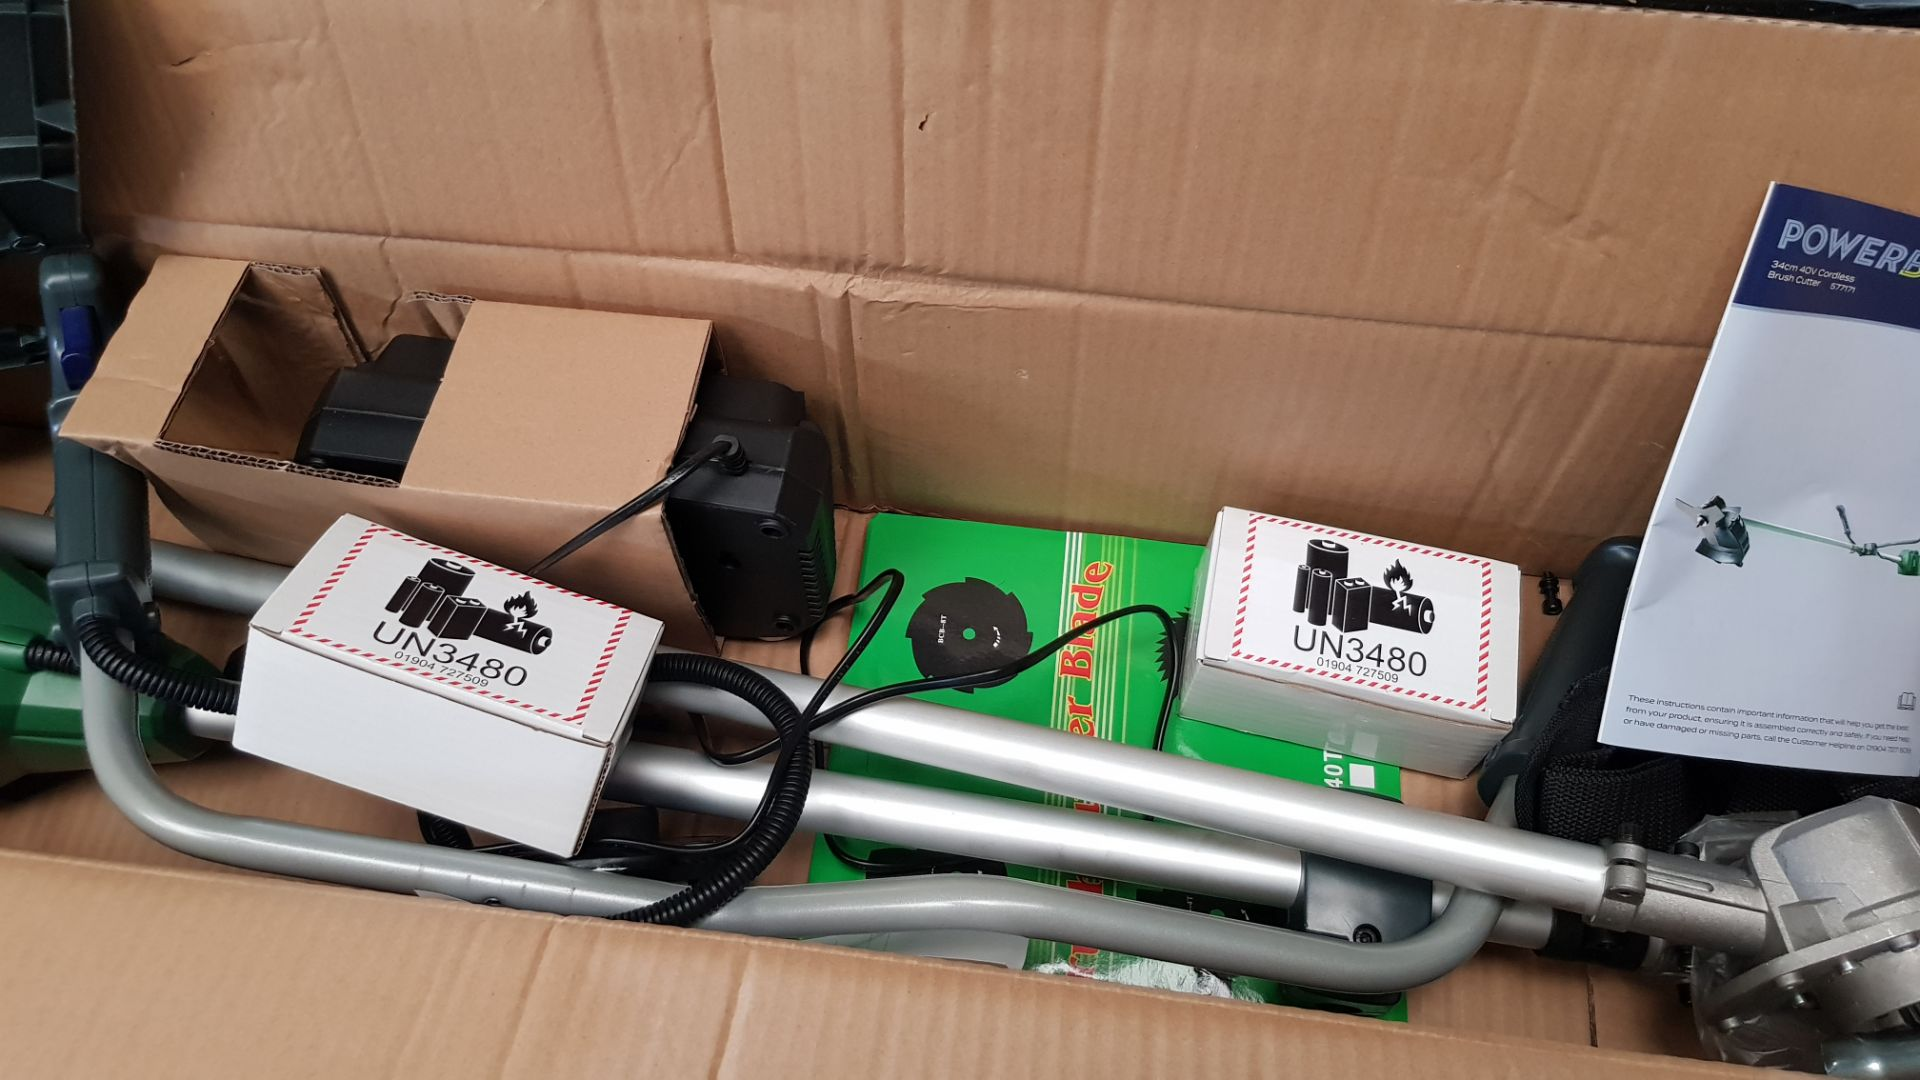 (P9) 1x Powerbase 34cm 40V Cordless Brush Cutter RRP £129. Contents Appear Clean, Unused With Batt - Image 5 of 5